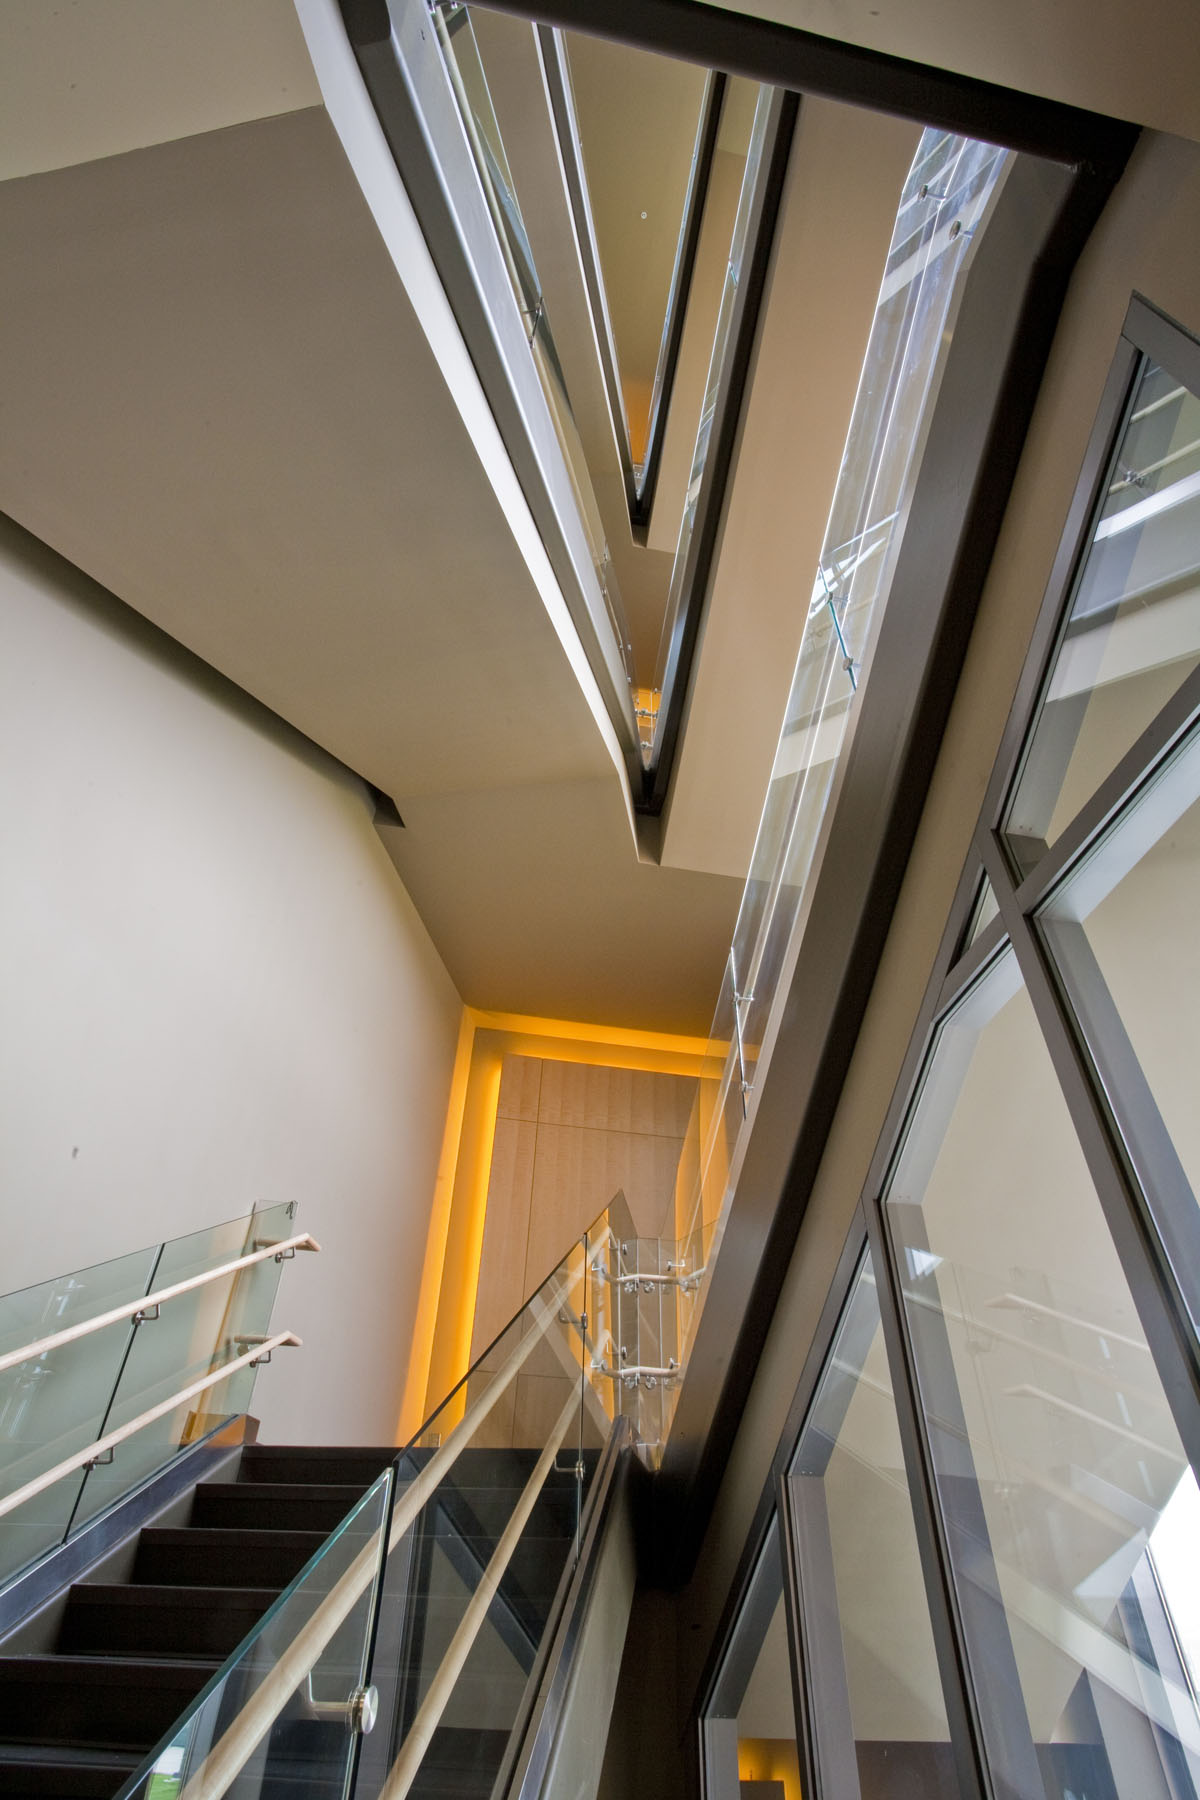 A view from the bottom of a stairway looking up to show triangular angles in the early childhood education building.